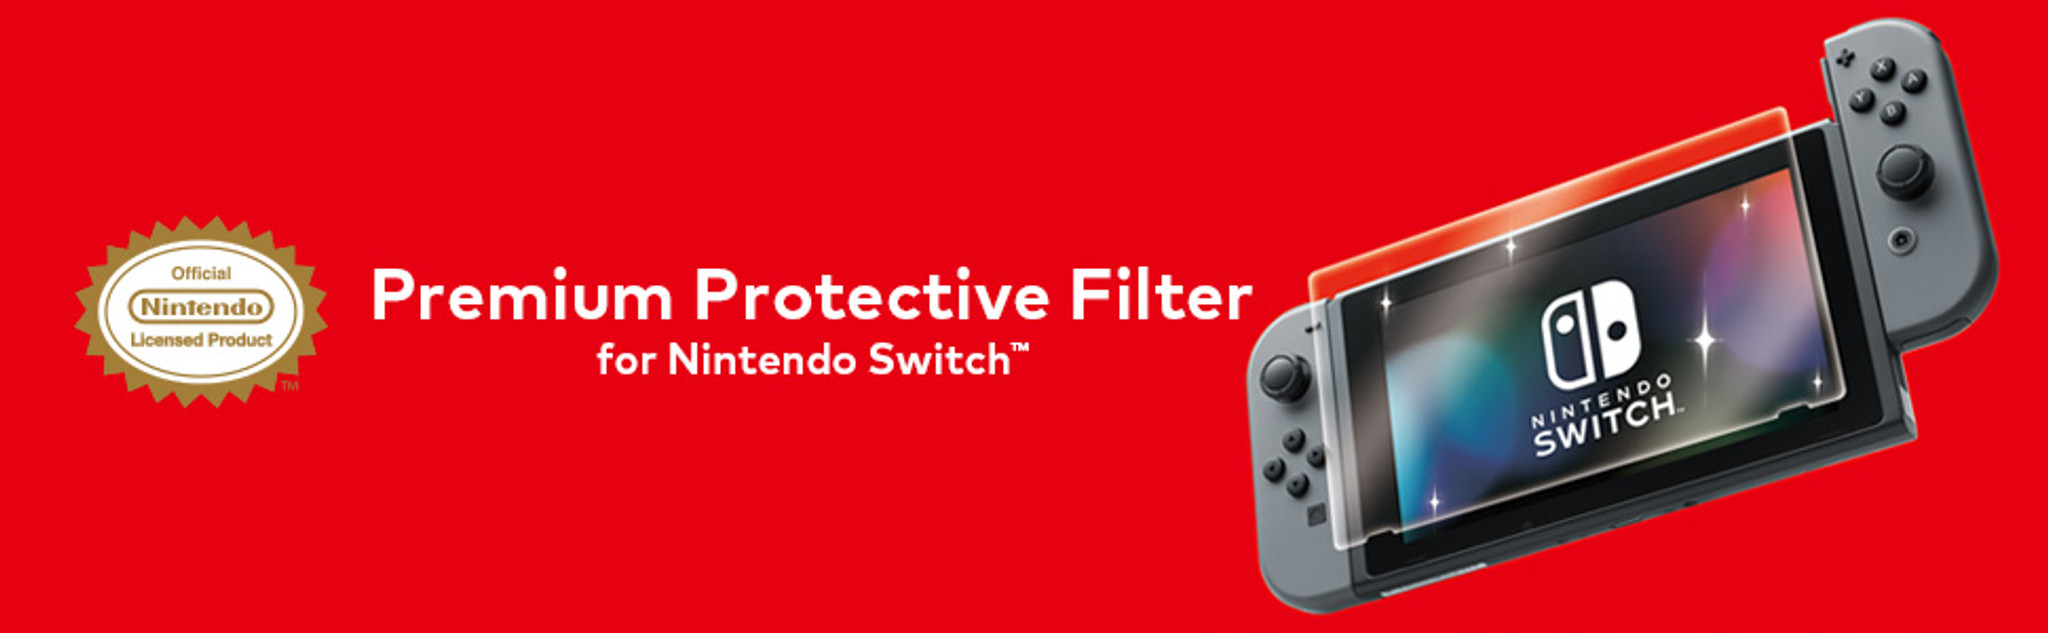 Premium Protective Filter for Nintendo Switch